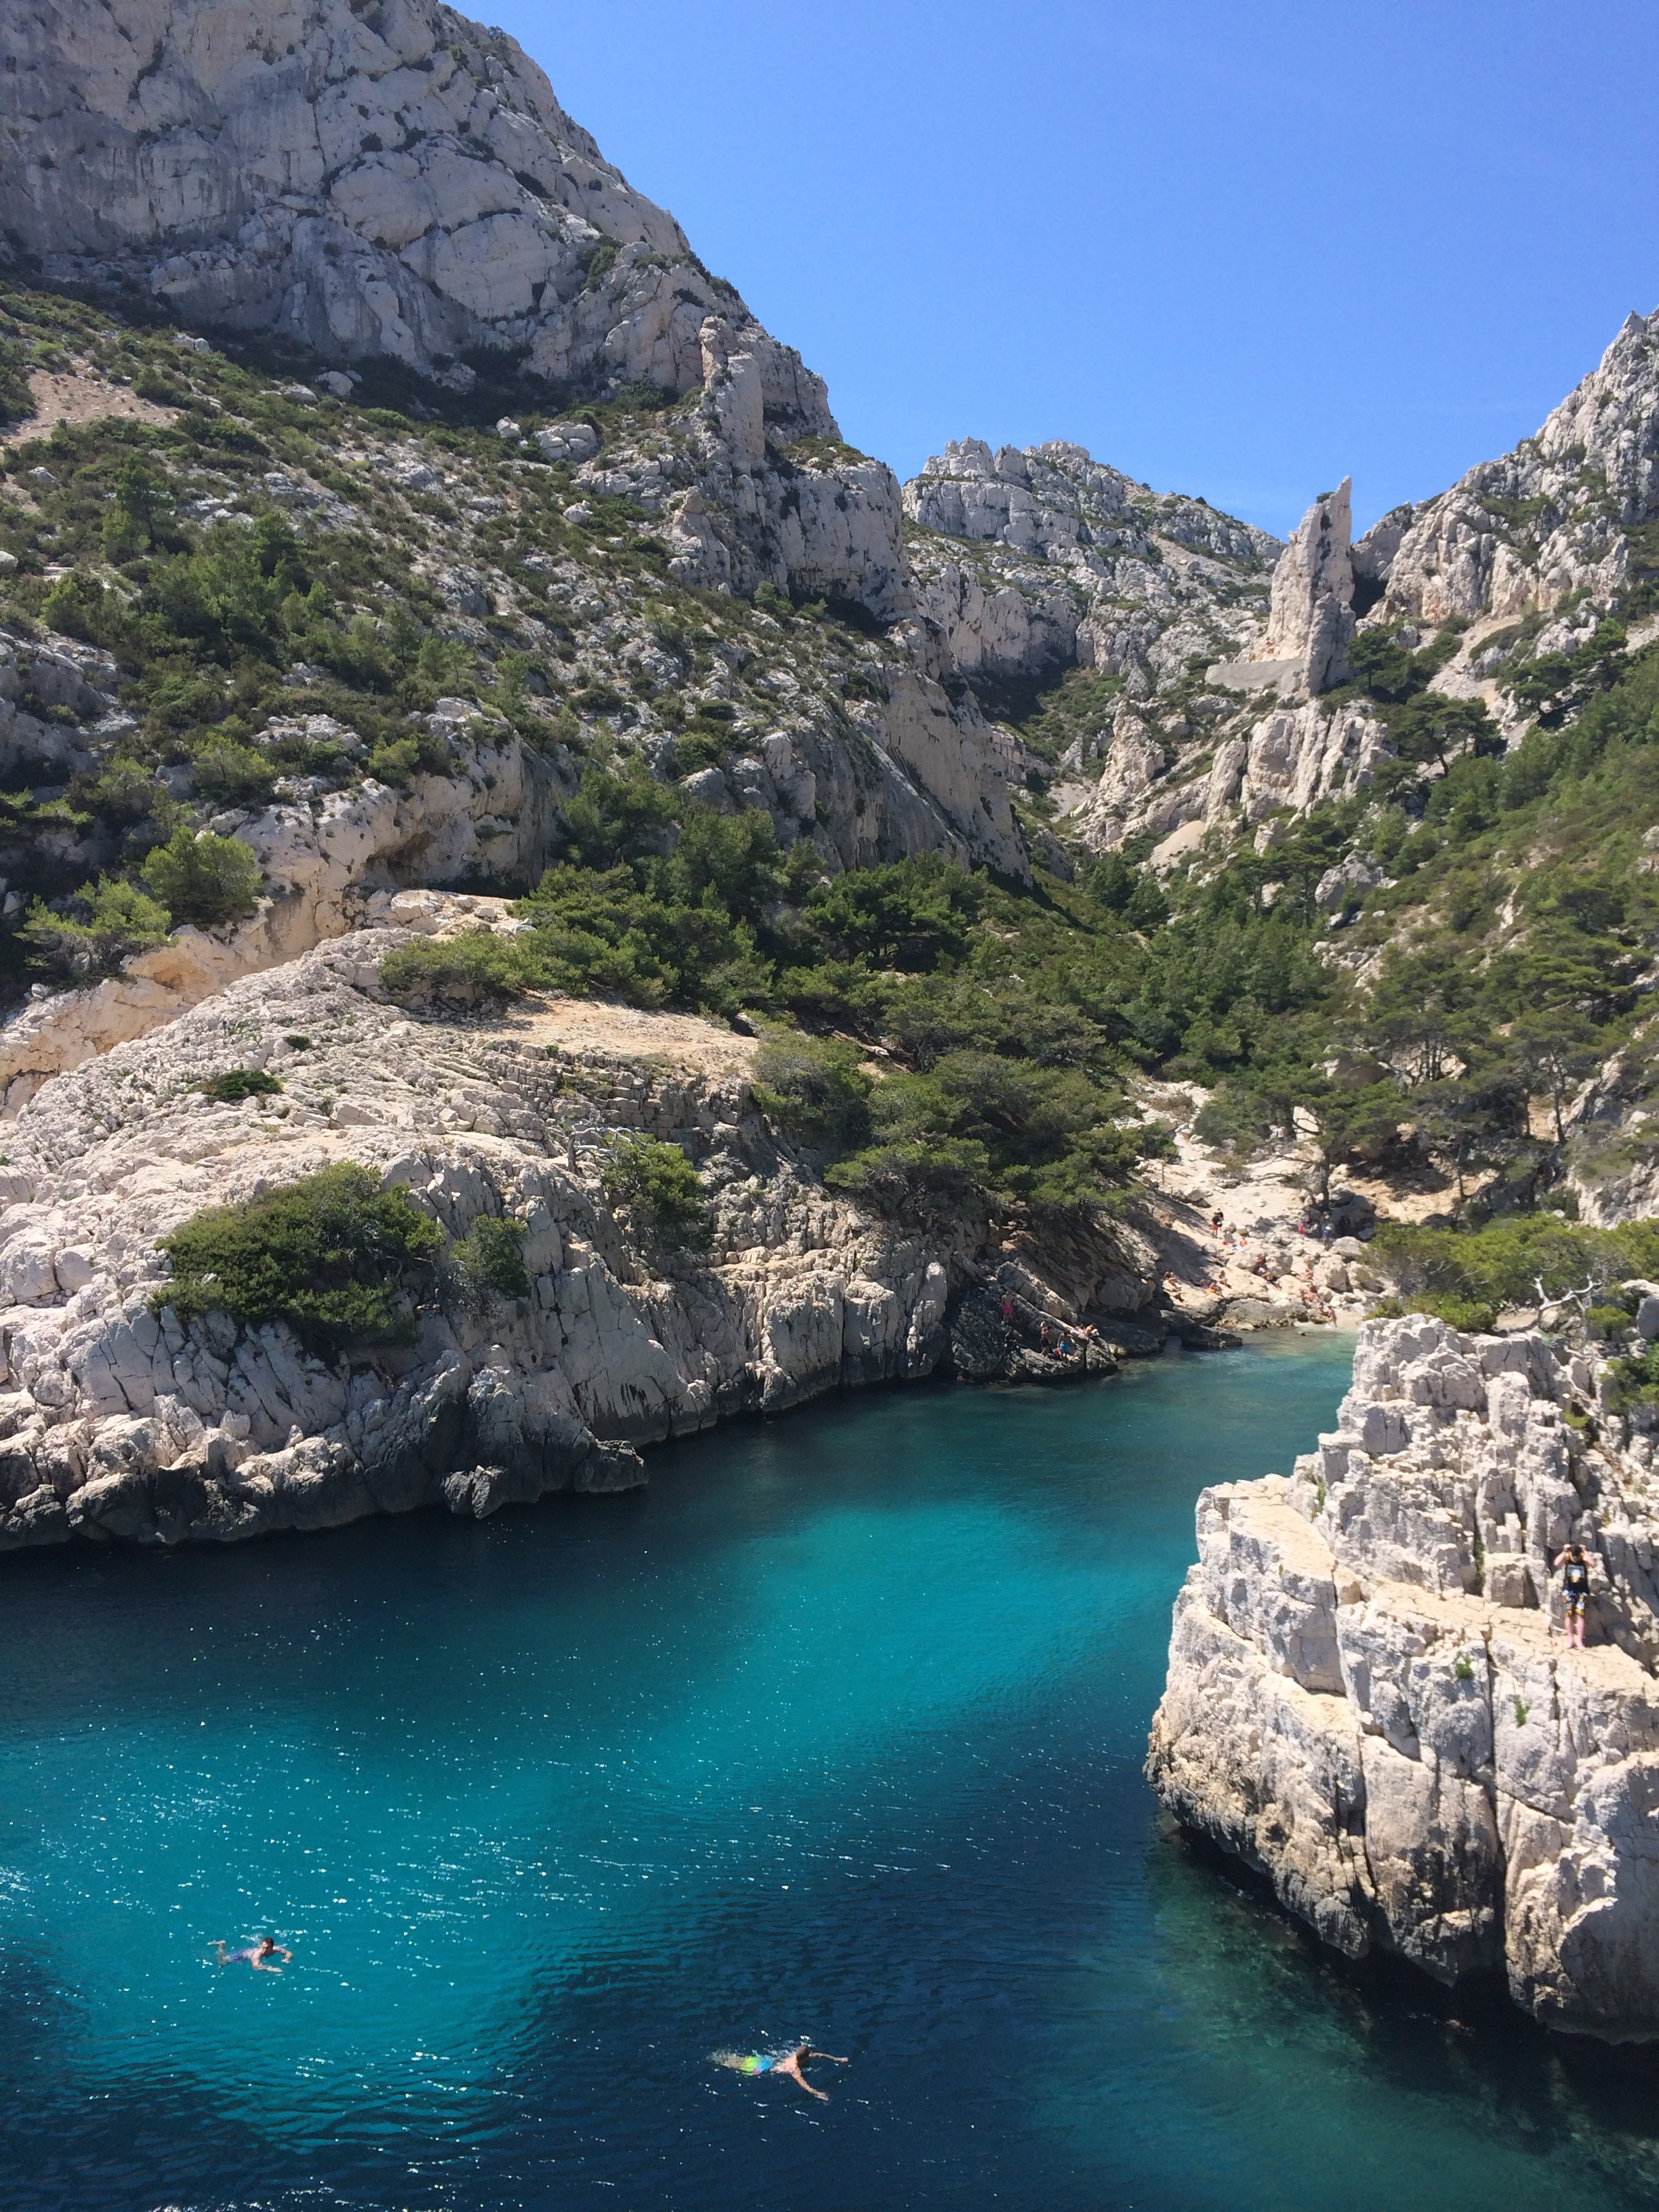 View from the bottom of Calanque de Sugiton.